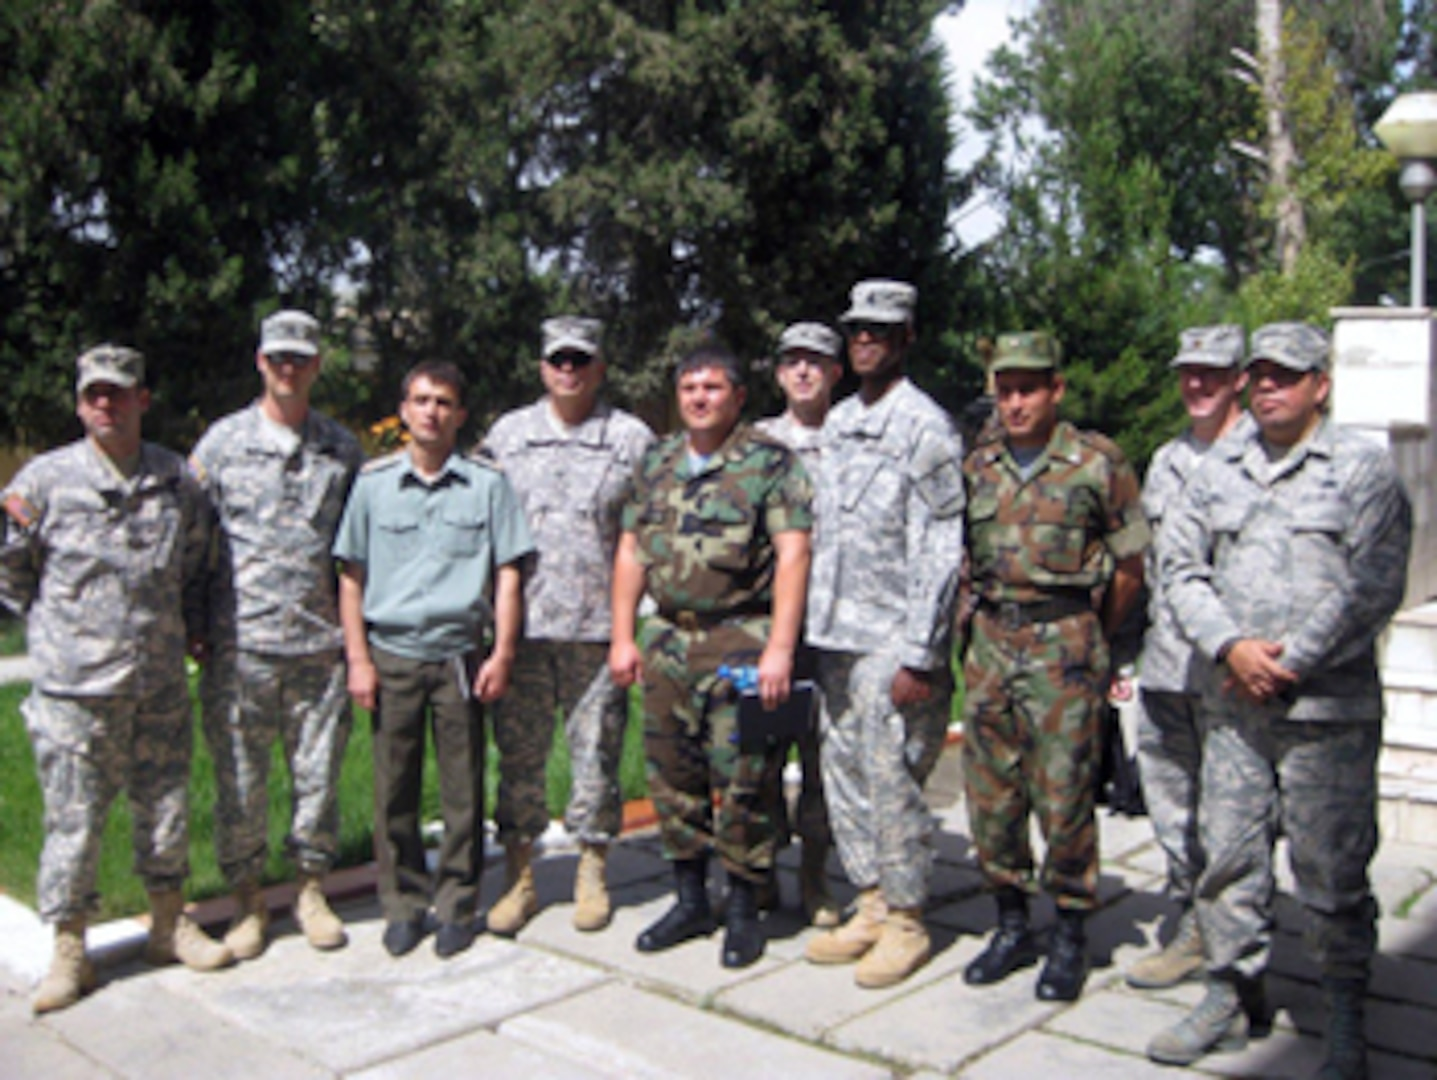 A group of Citizen-Soldiers and -Airmen from the Virginia National Guard meet with the commander of the PKO battallion and some of his staff members during a trip to Tajikistan, June 13 to 19, 2011.